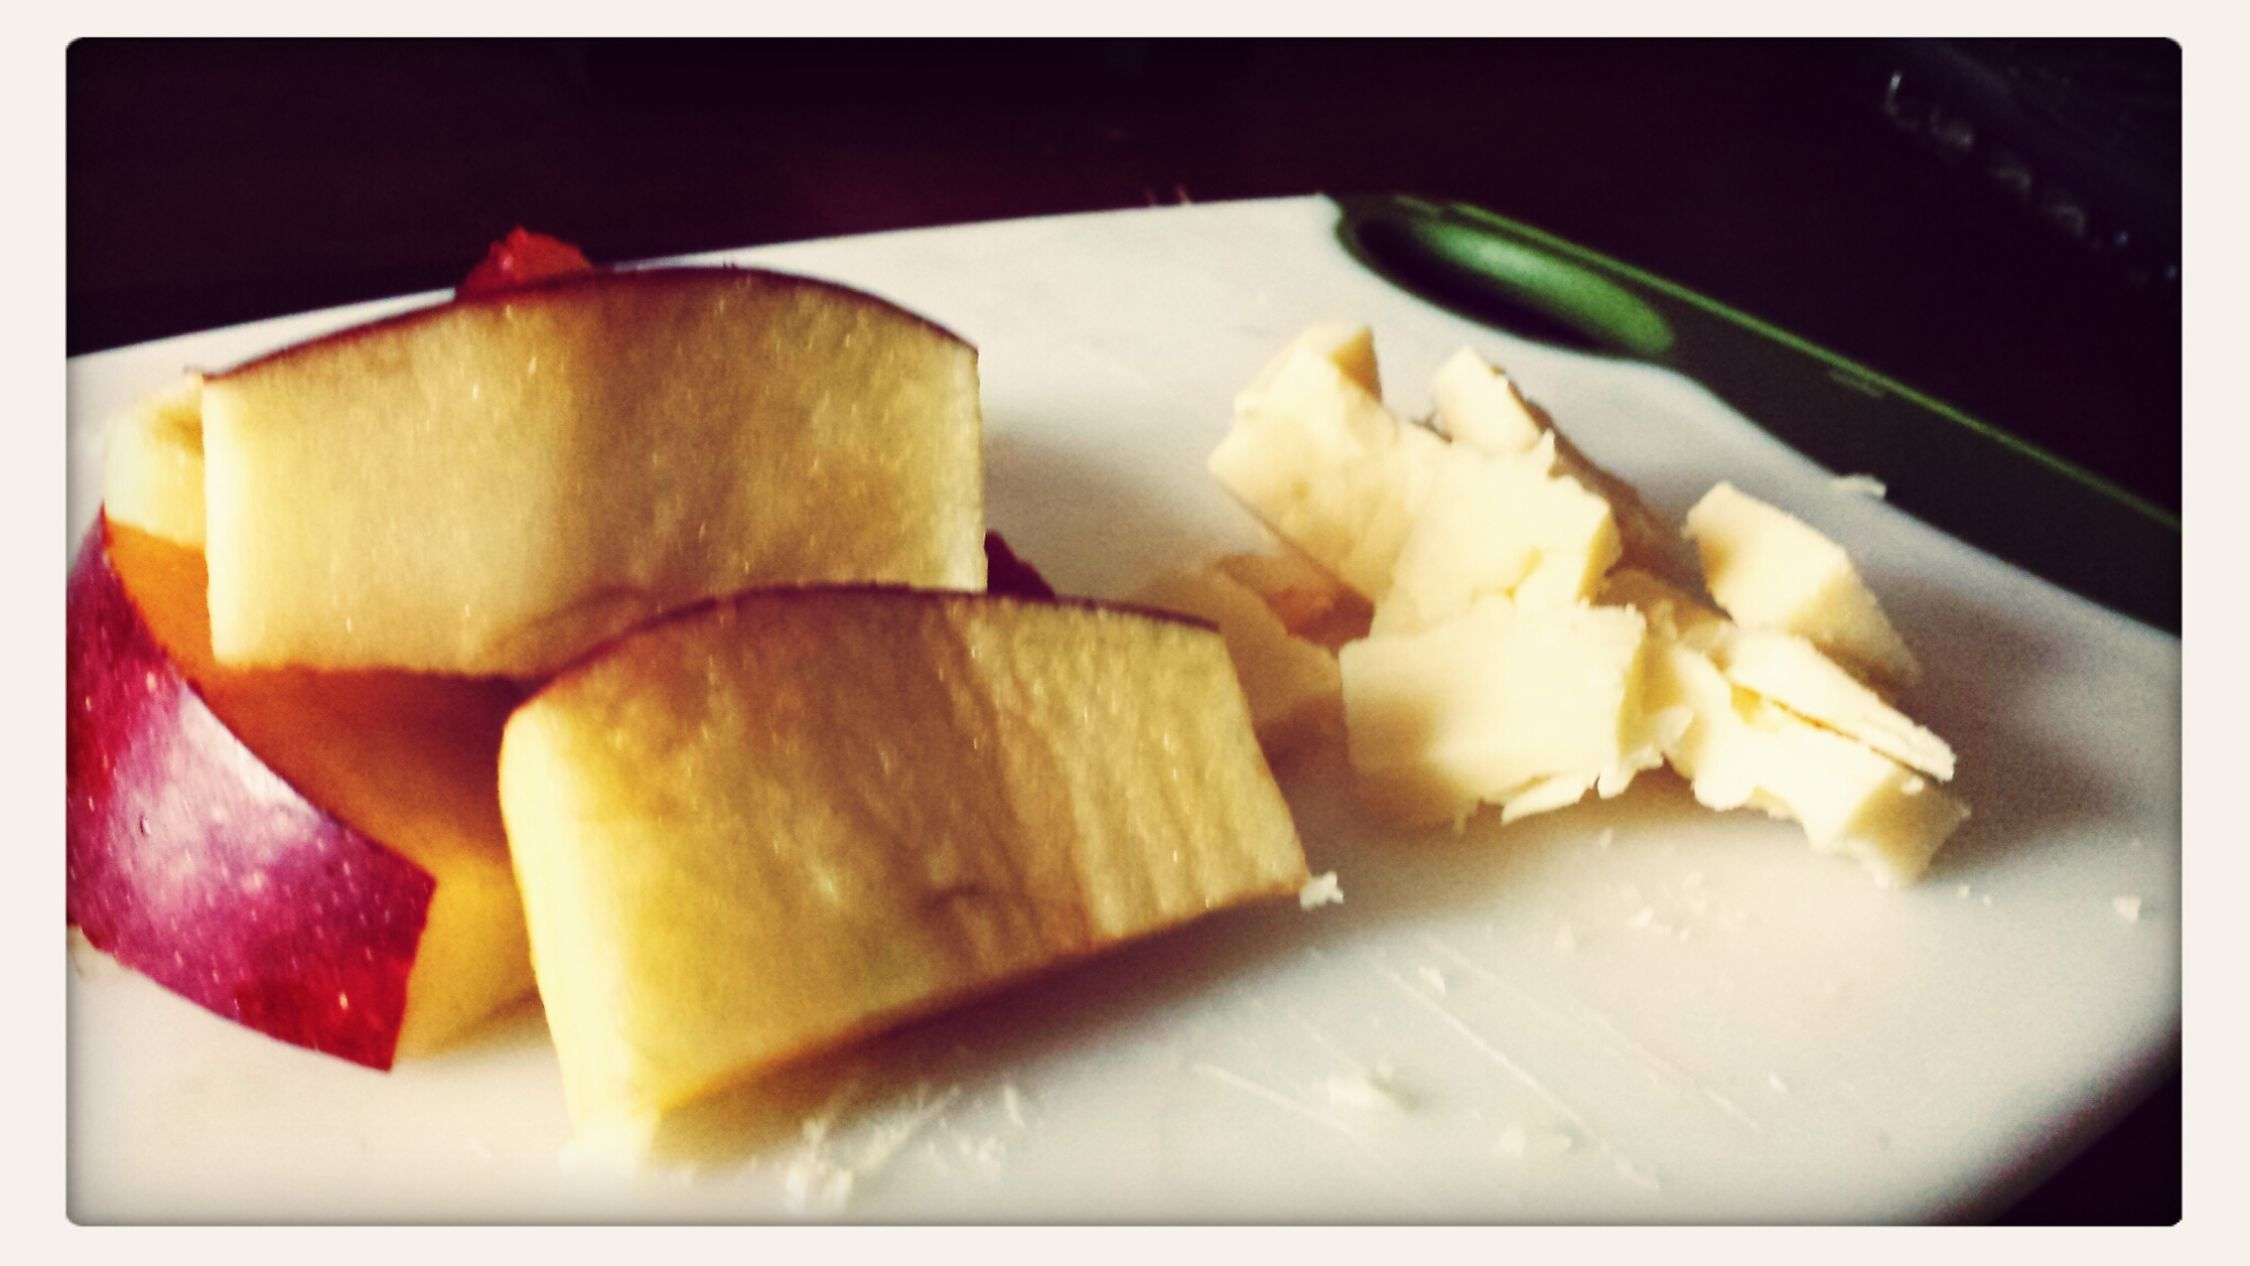 Mid afternoon snack with the best cheese ever! Helluva Good XXX Sharp with some delicious sliced apples! Cheese! Cheesewhore Cheese Cheese <3